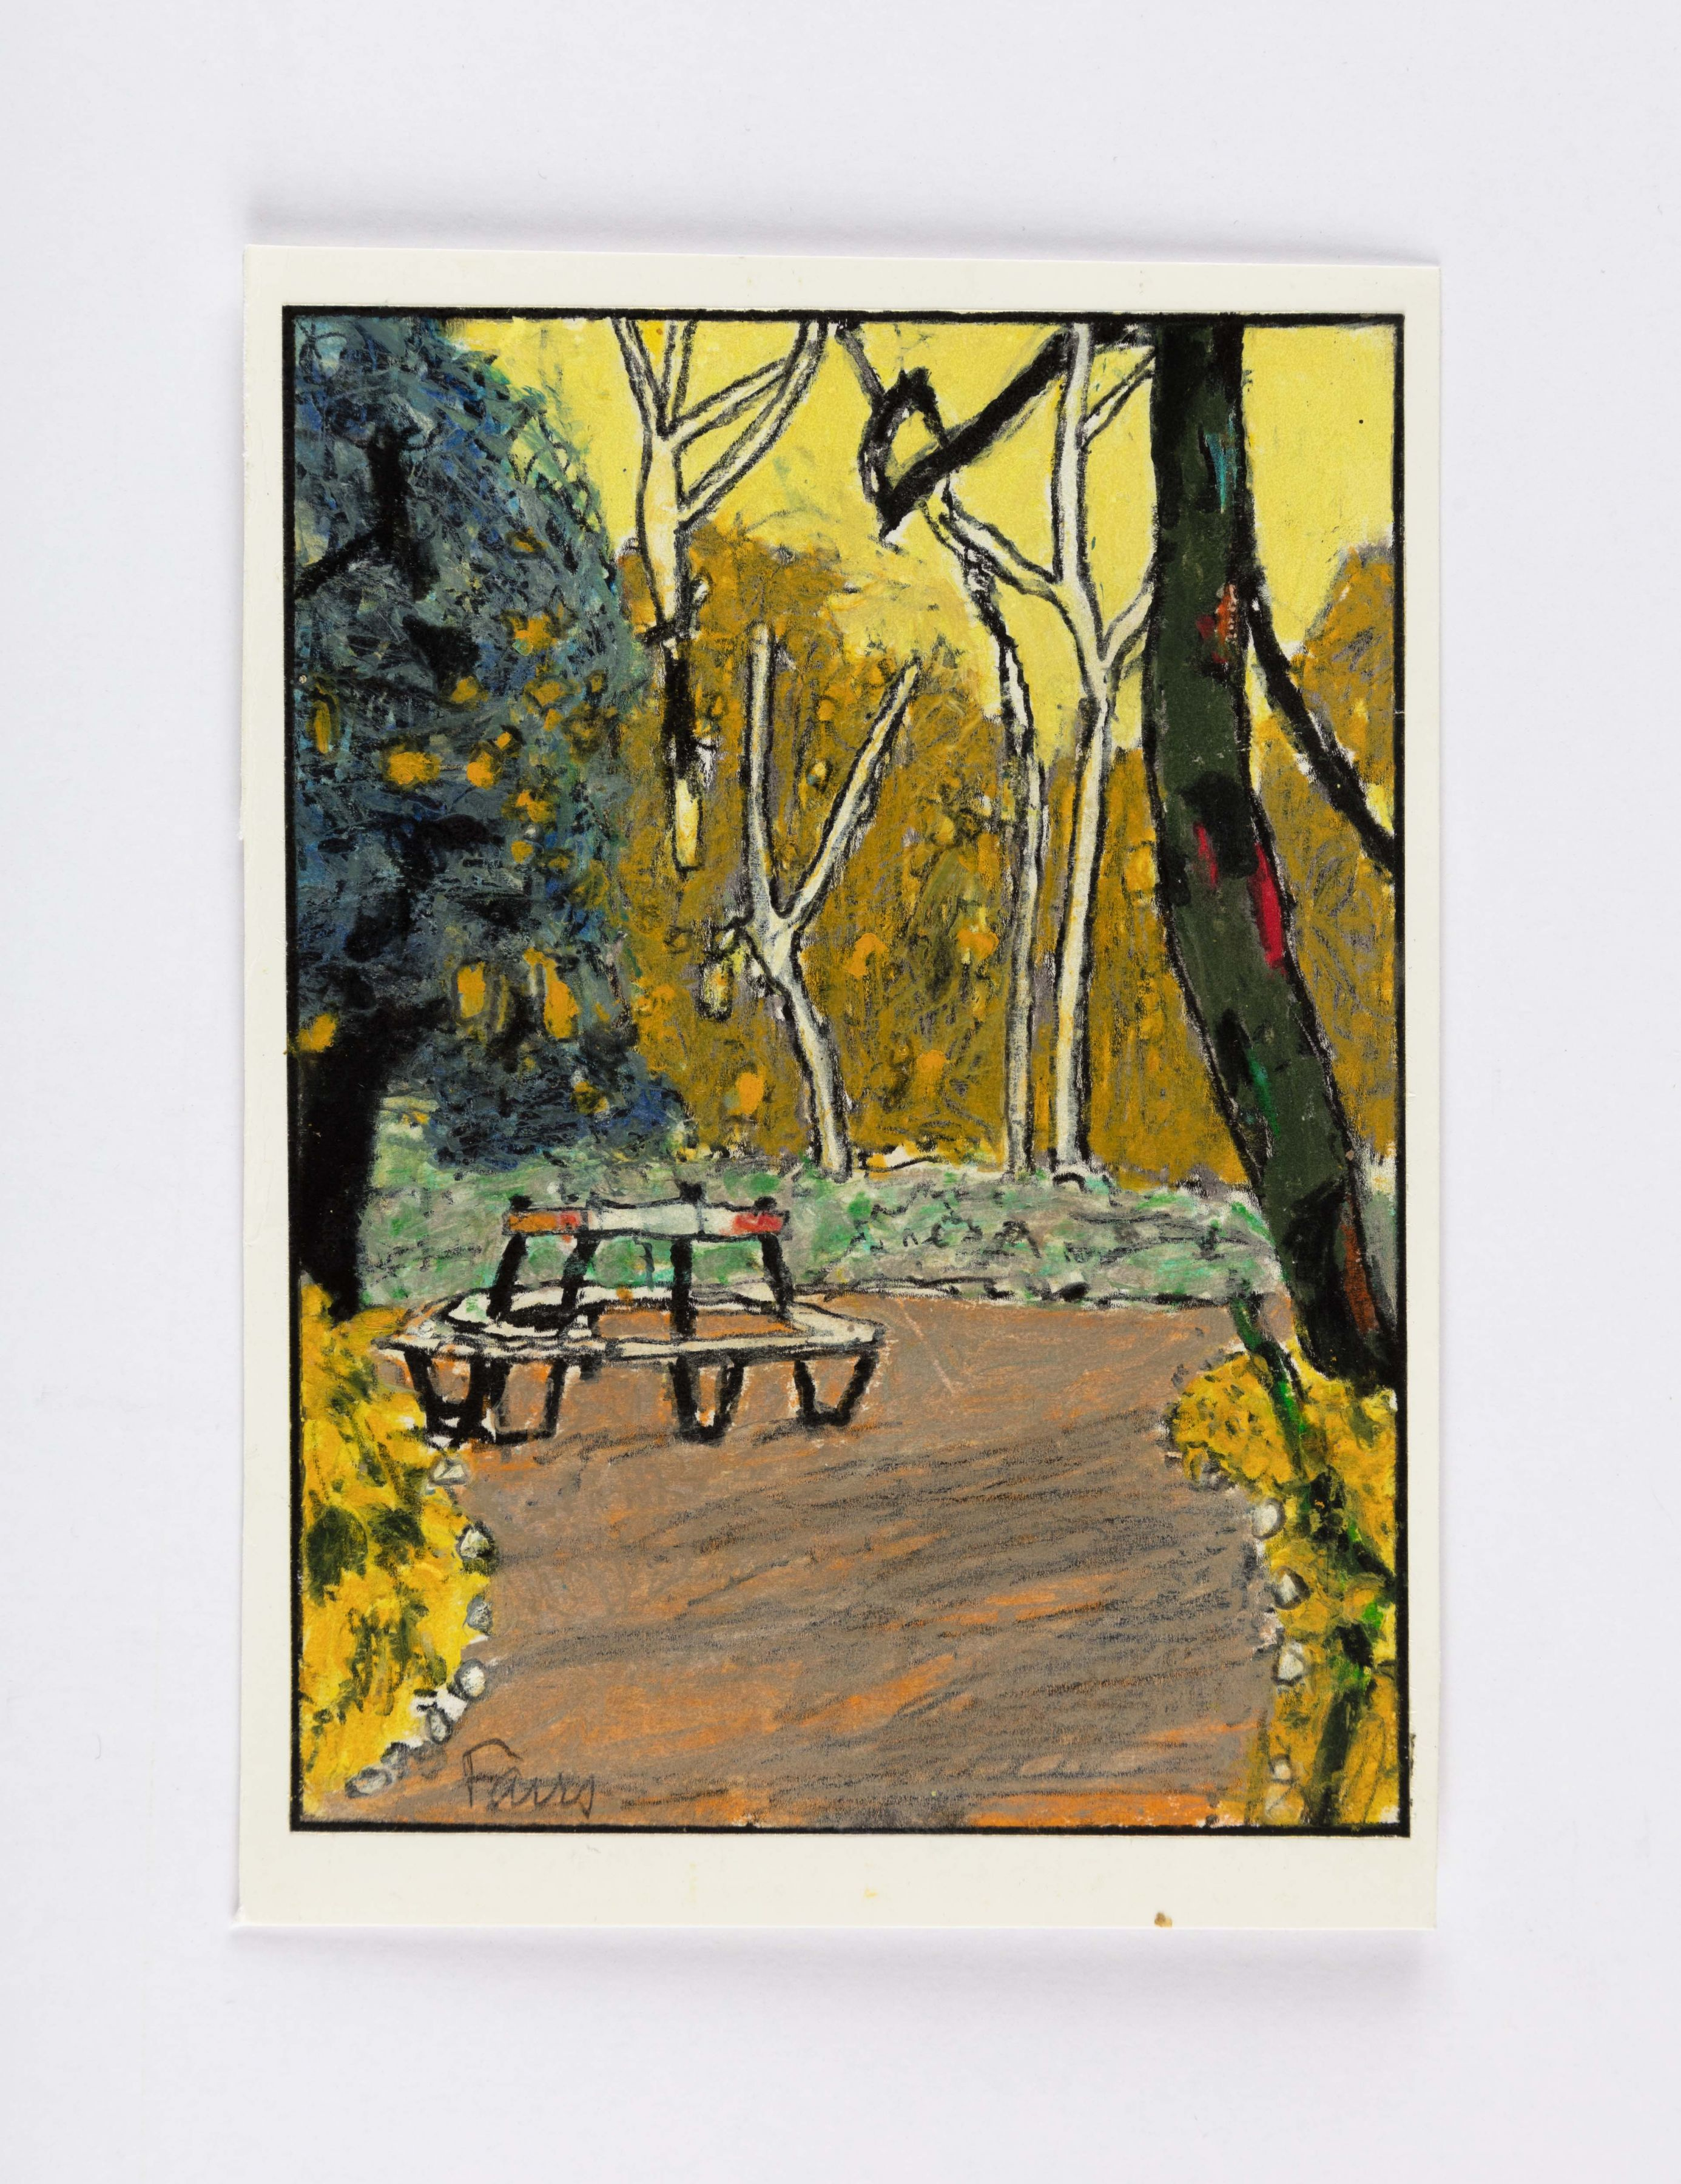 mixed media drawing of a park with trees and a park bench